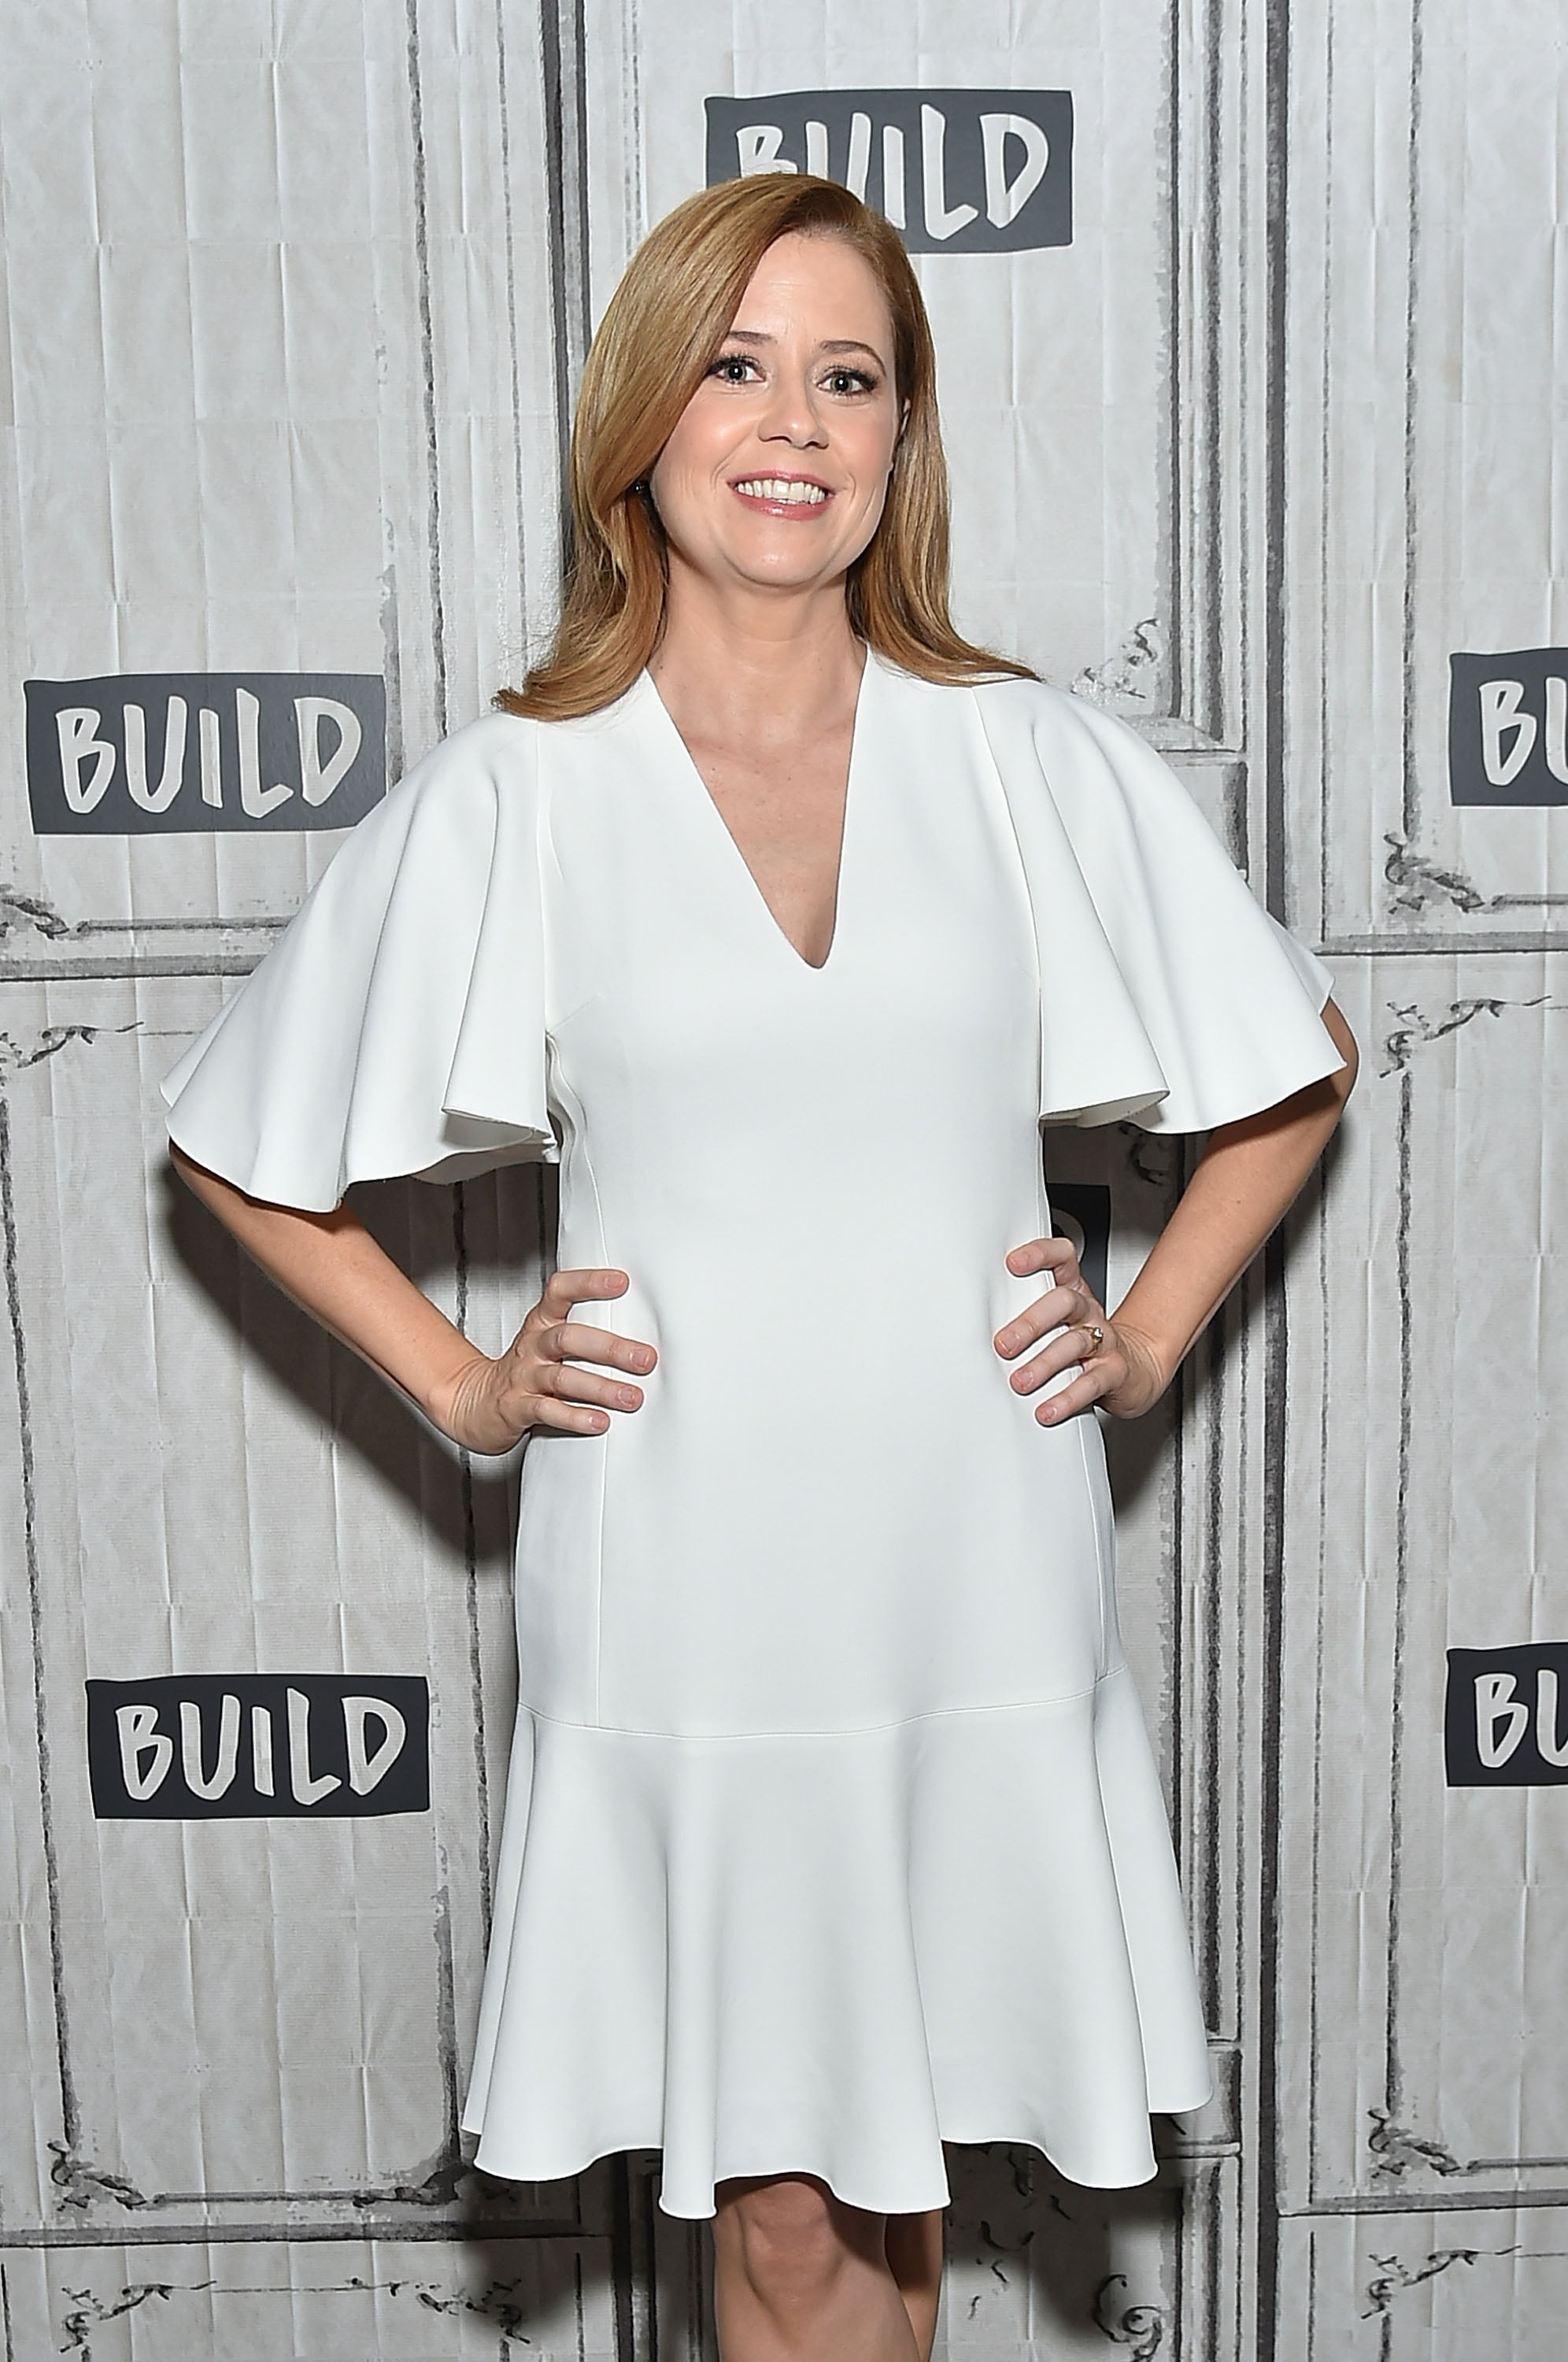 NEW YORK, NY - MARCH 23:  Actress Jenna Fischer poses for a picture at Build Studio on March 23, 2018 in New York City.  (Photo by Mike Coppola/Getty Images)